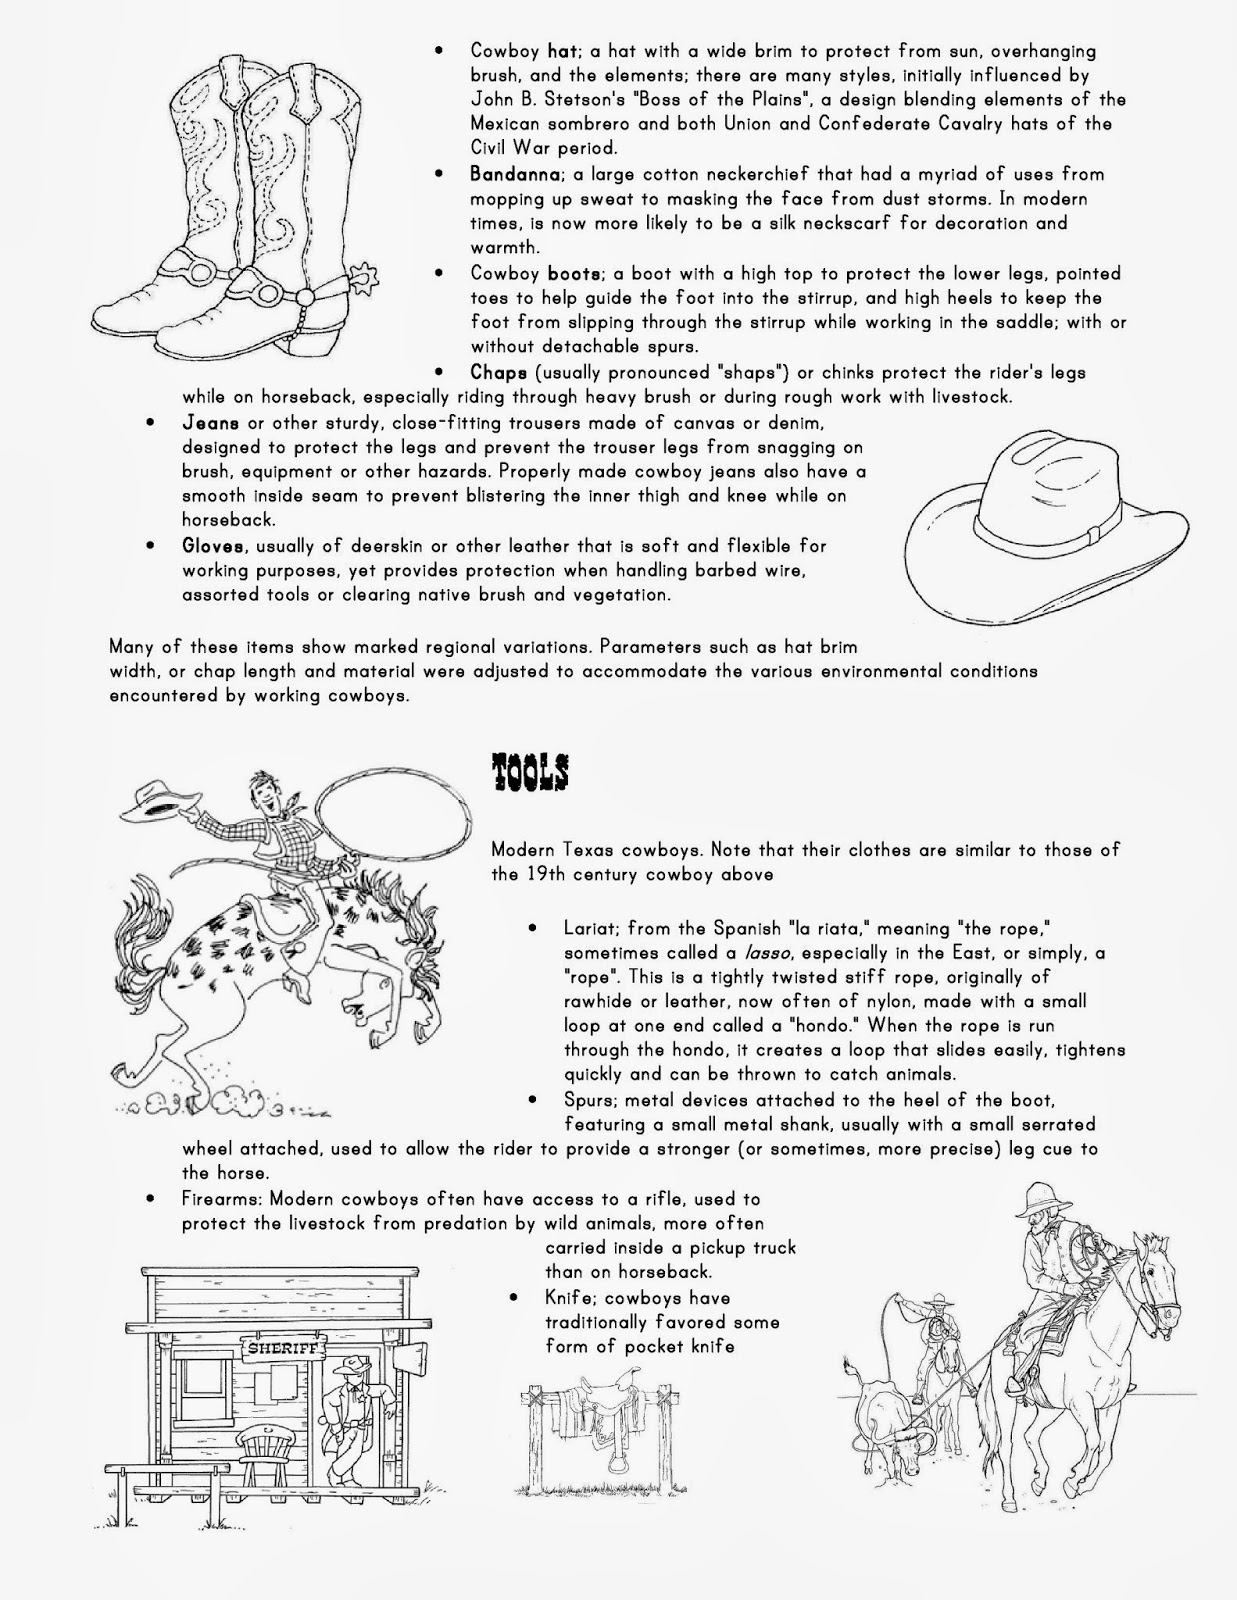 Magnificent Why Are Cowboys Bad At Math Worksheet Answers Ornament ...